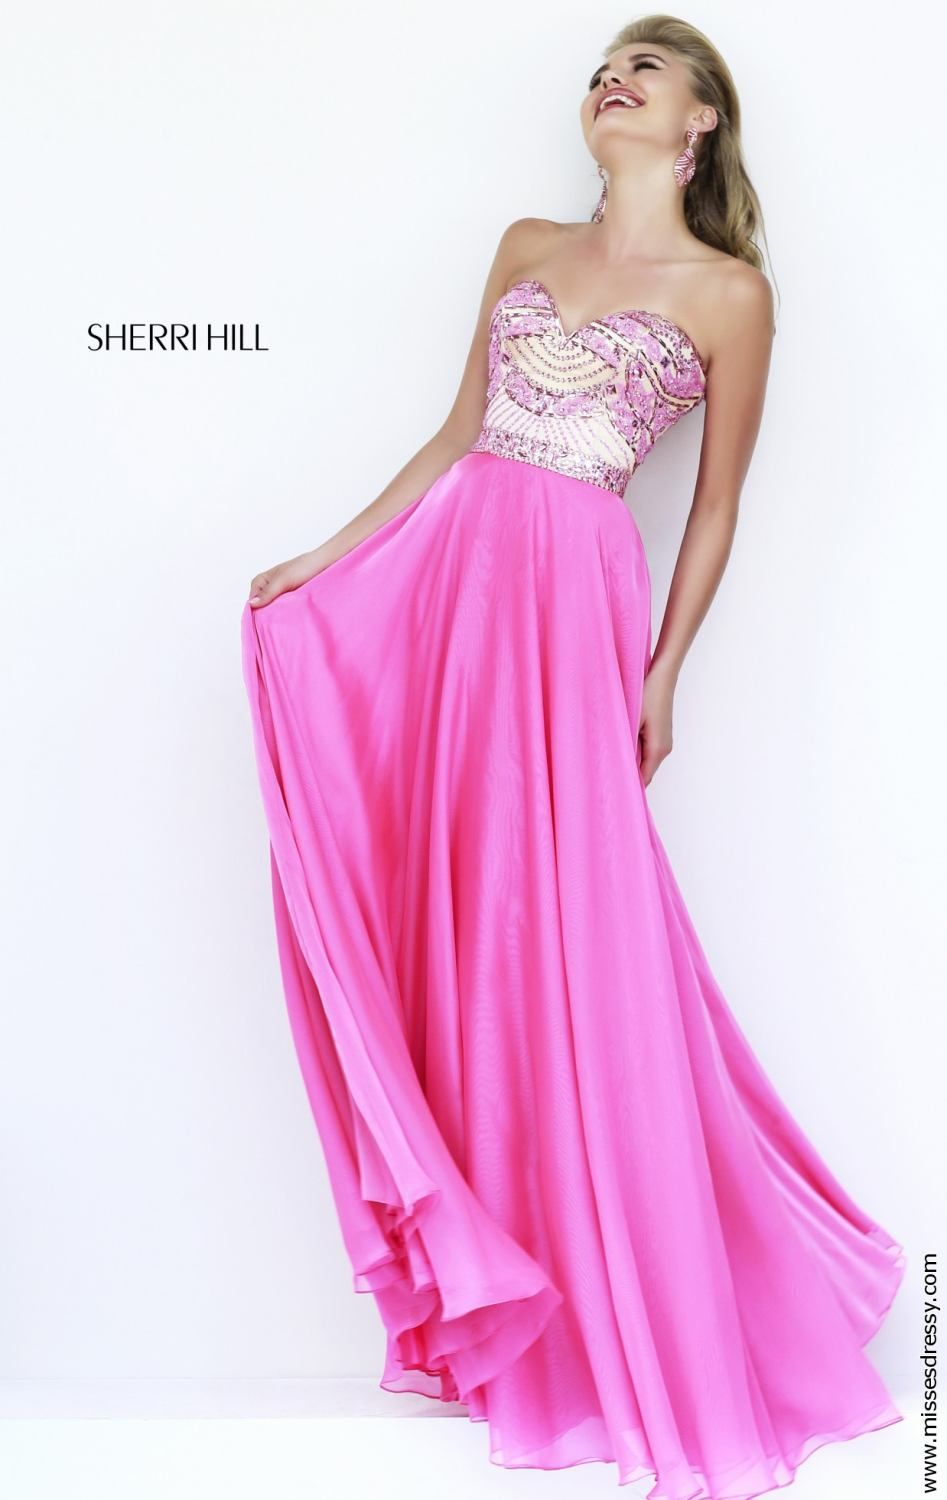 Strapless sweetheart long gown by sherri hill elegant styles